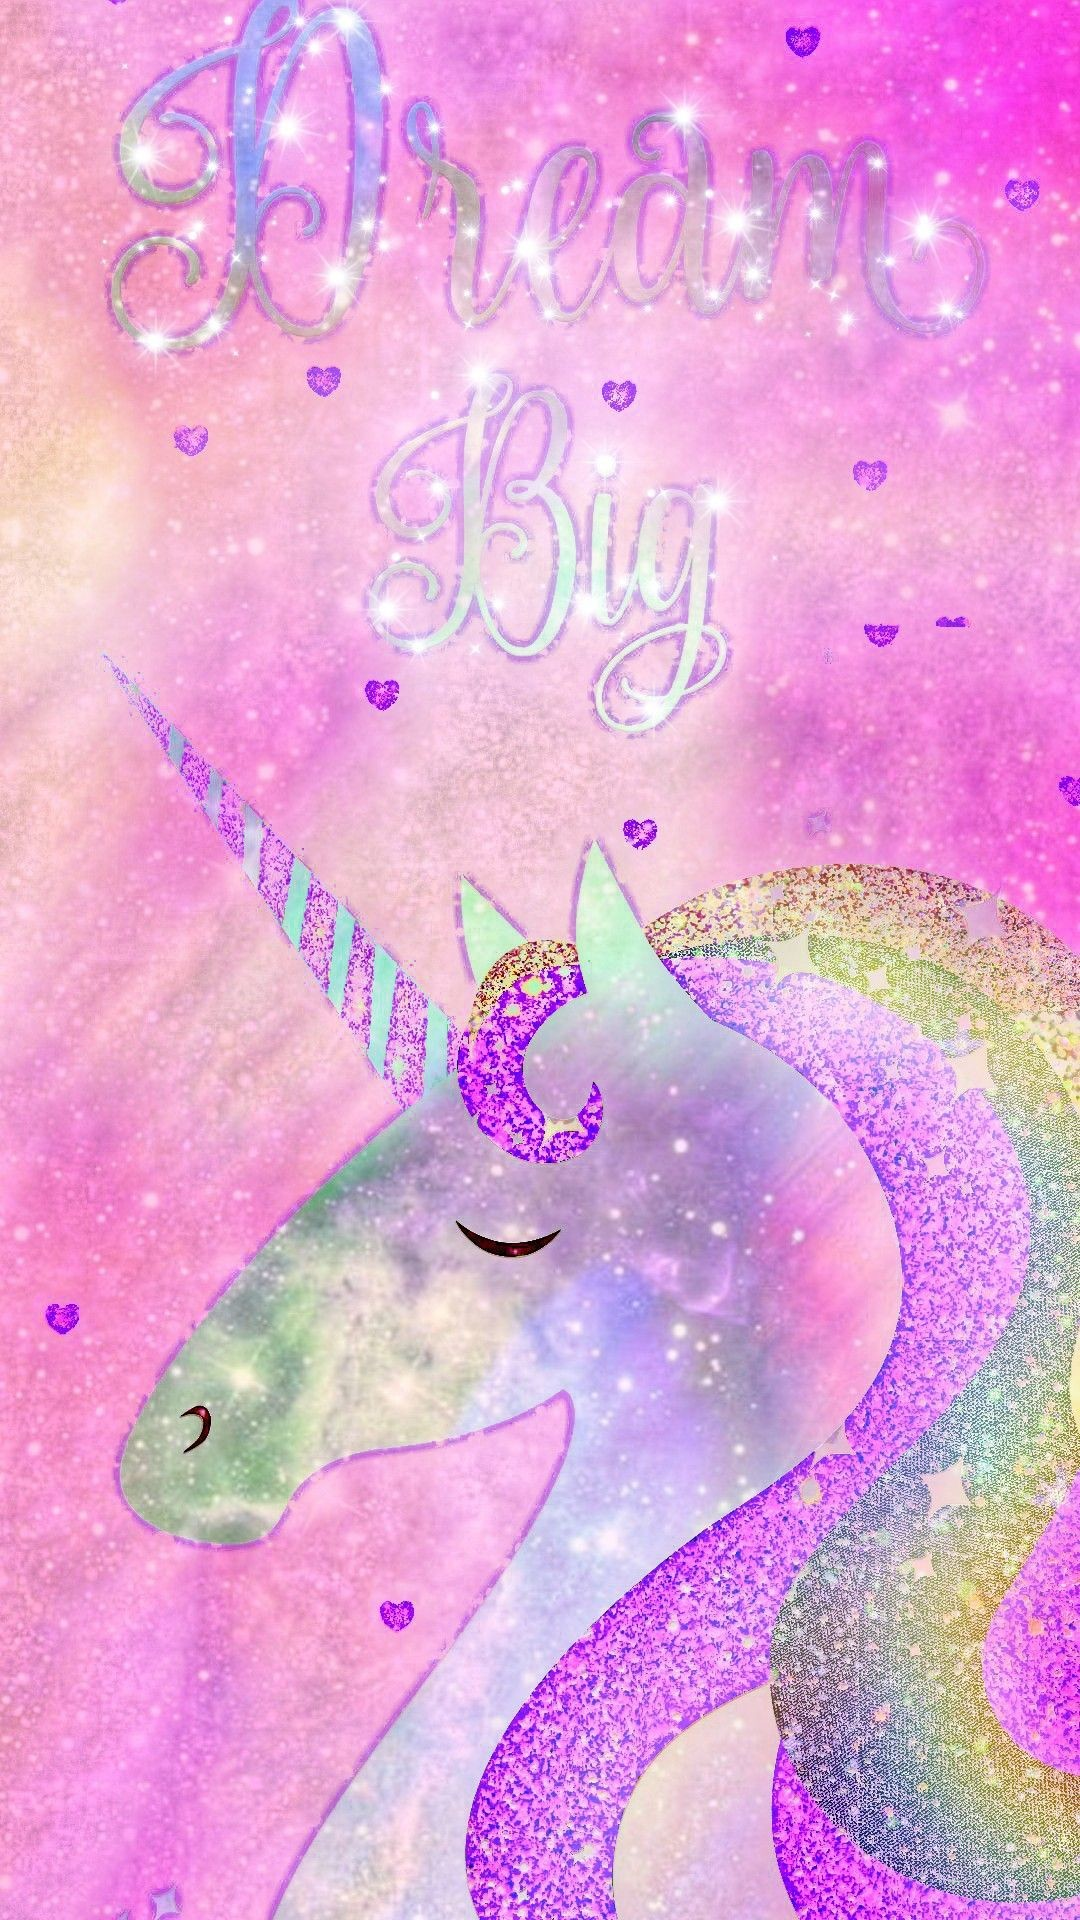 Res: 1080x1920, Dream Big Unicorn, made by me #pastel #kawaii #fantasy #unicorn #